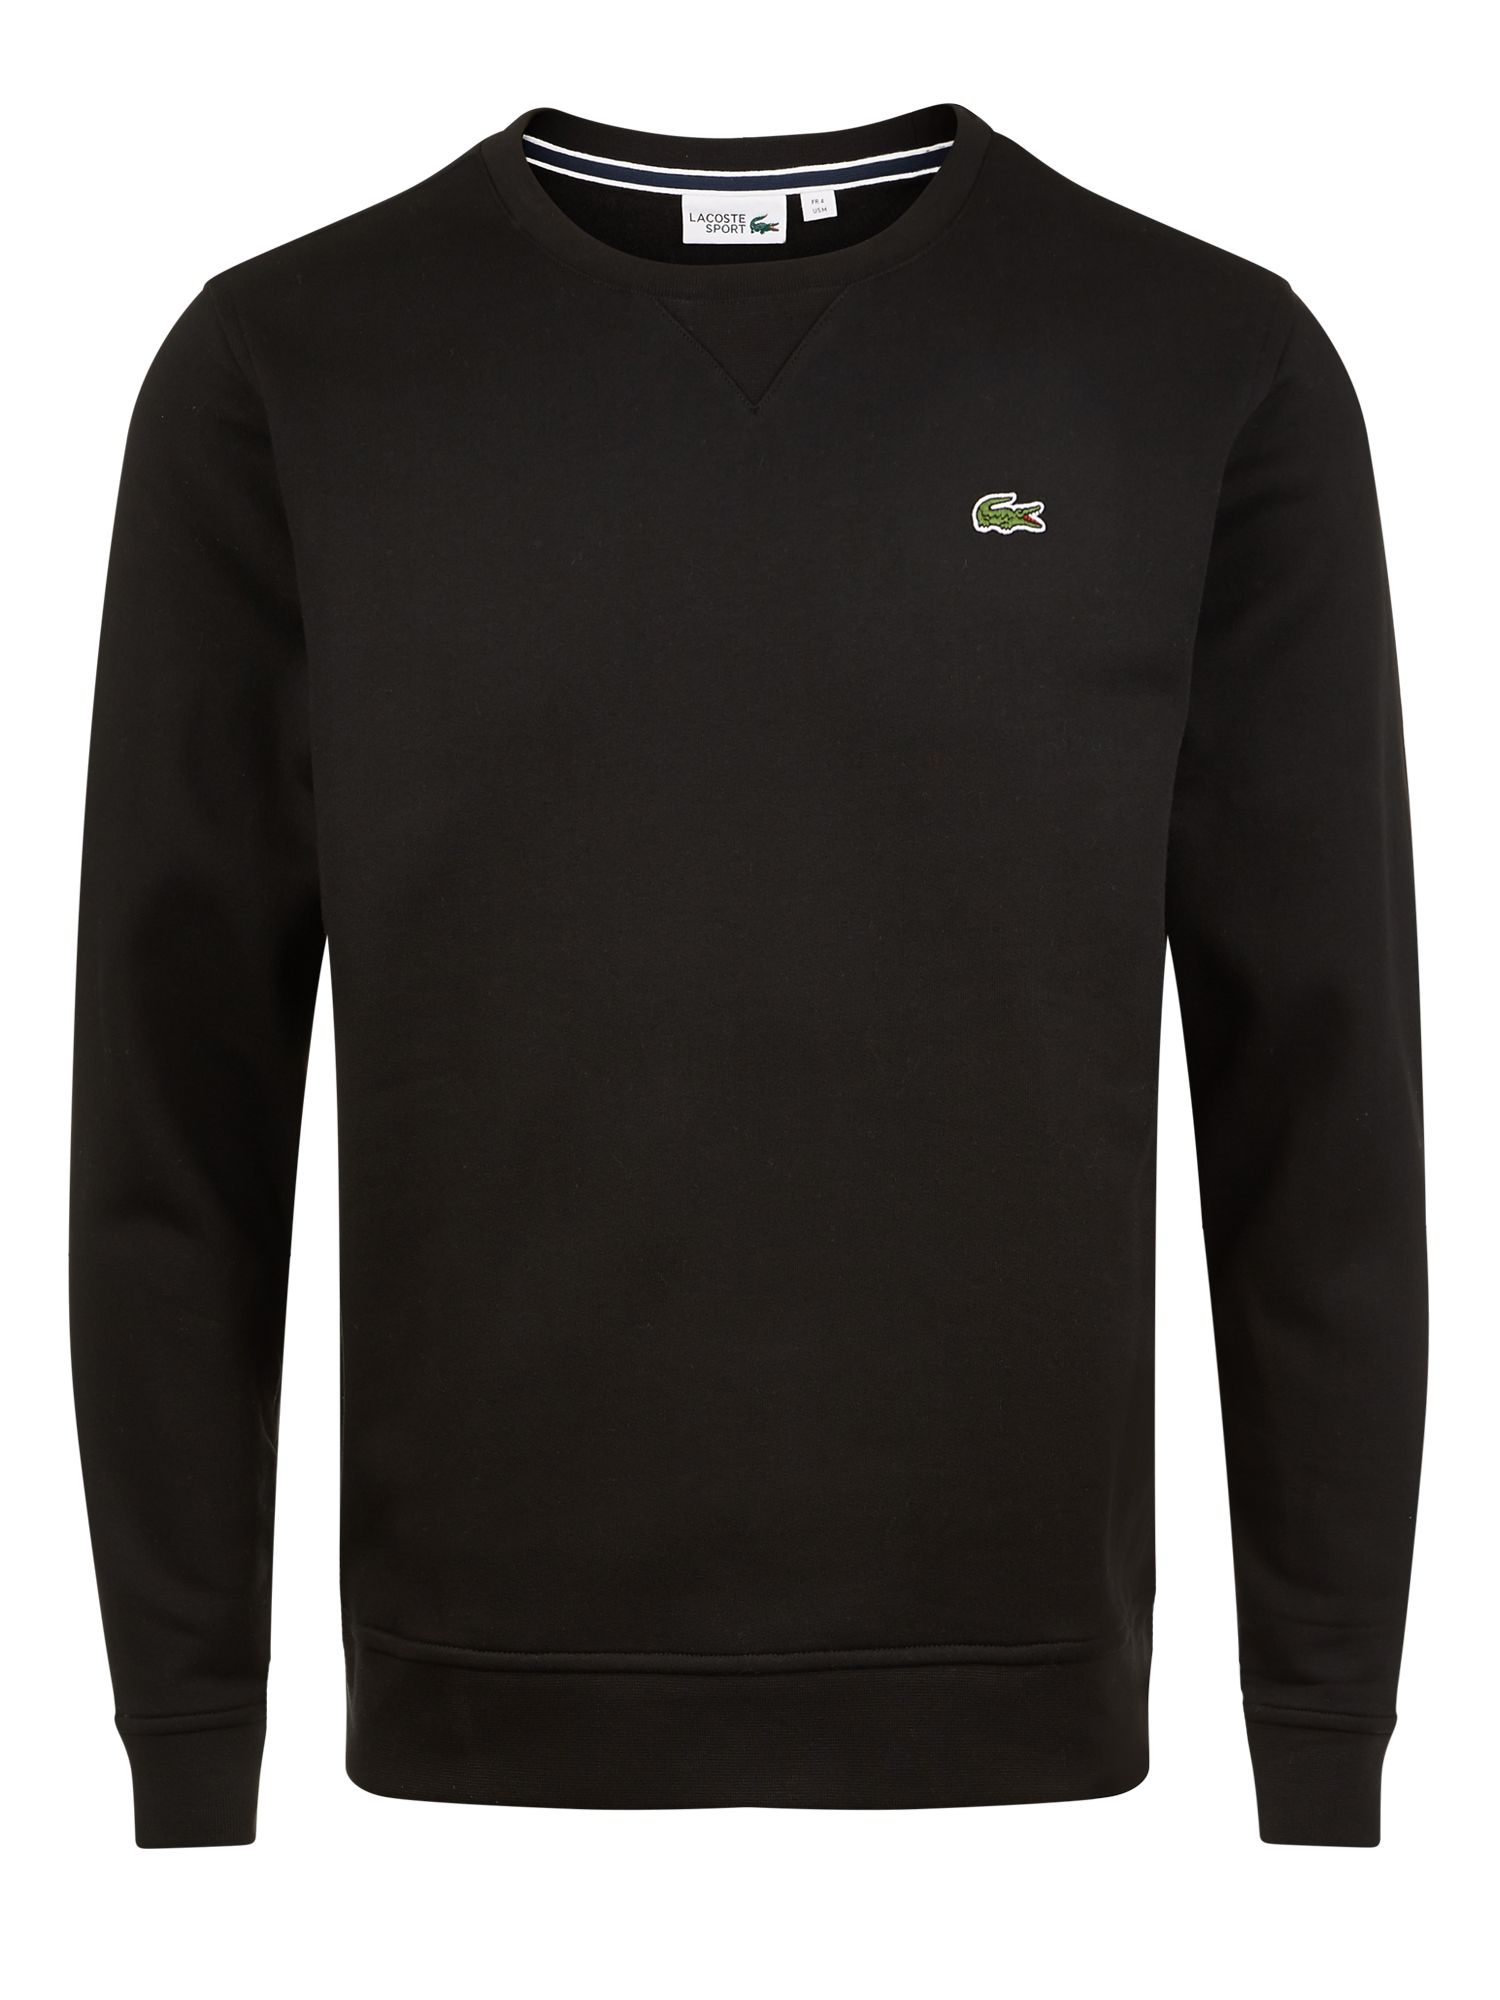 Men's Lacoste Lacoste Crew Neck Fleece Sweatshirt, Black